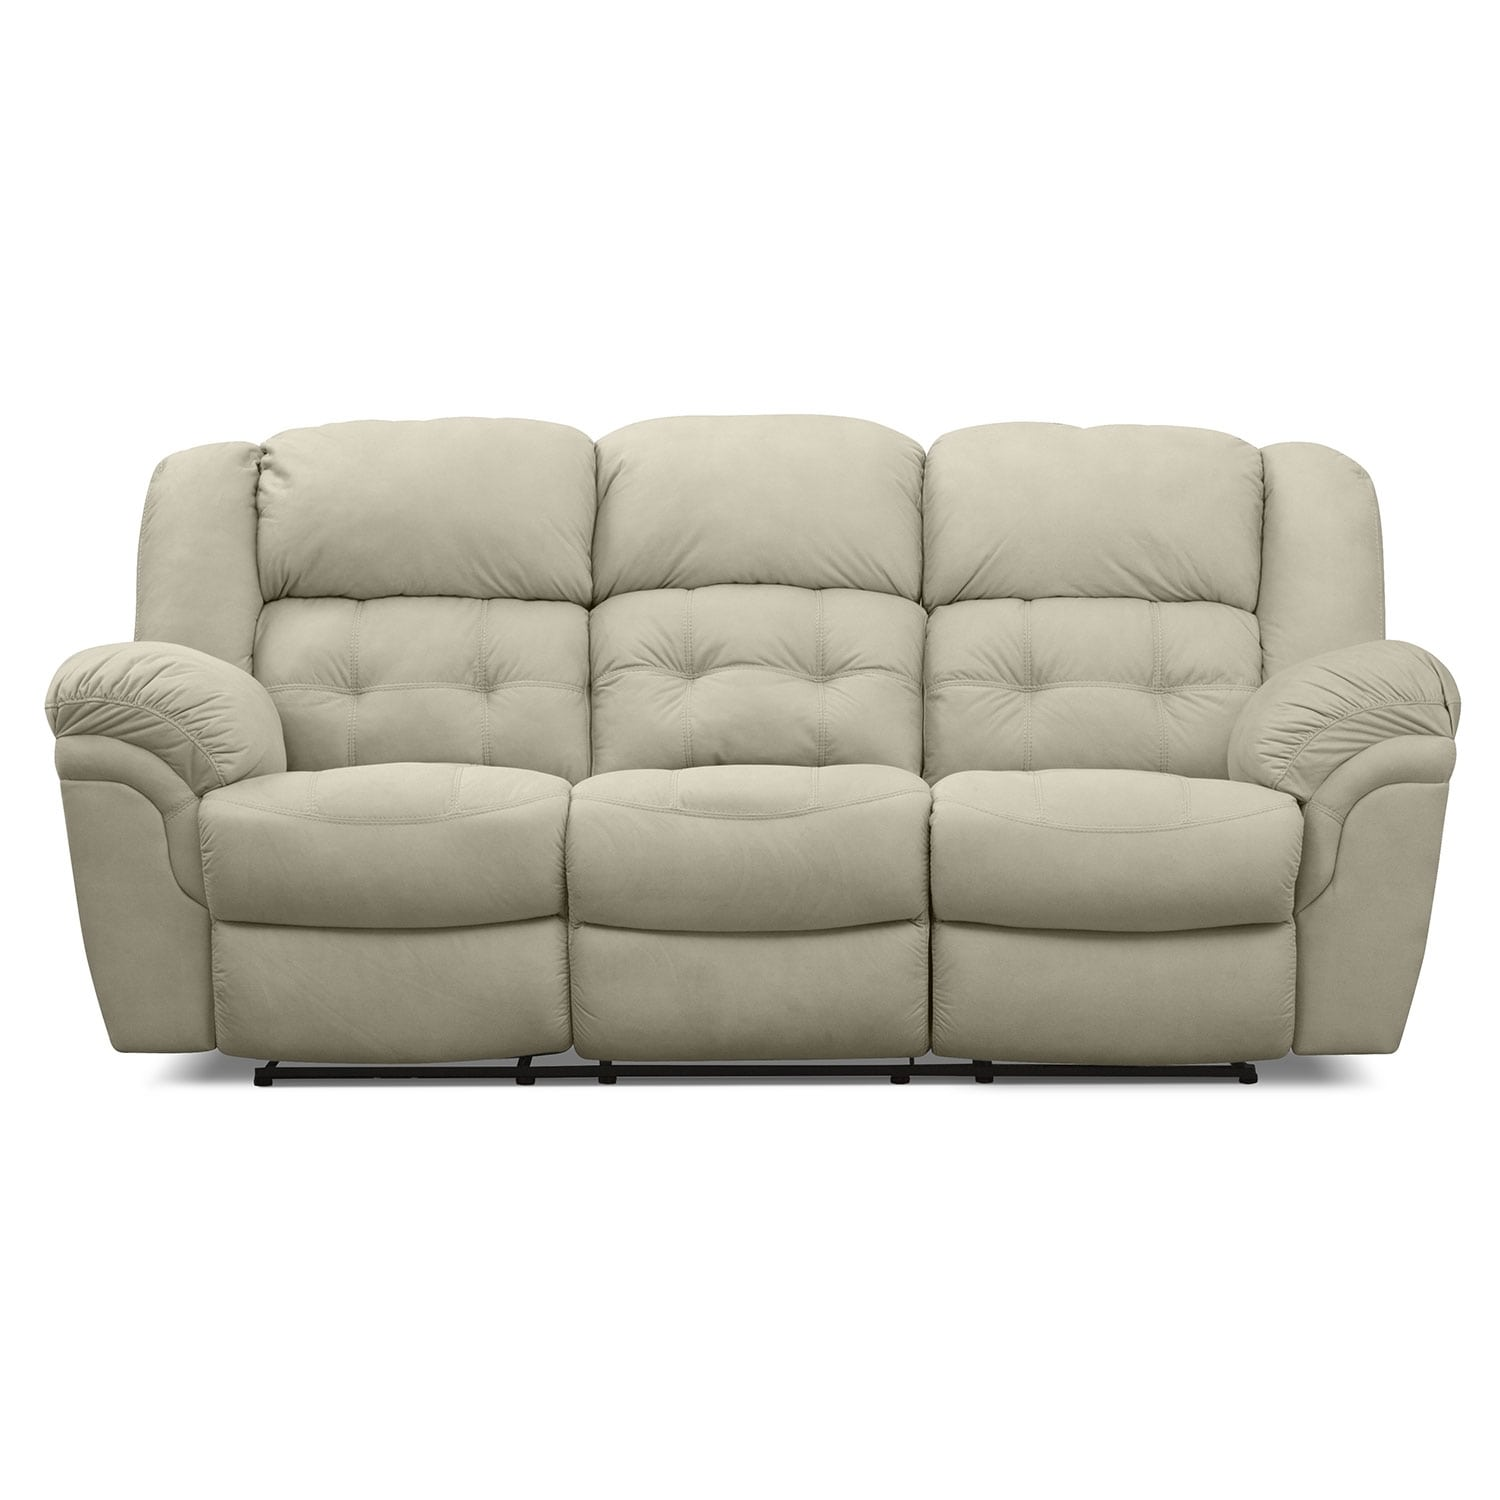 Benton Beige Reclining Sofa Furniture Com